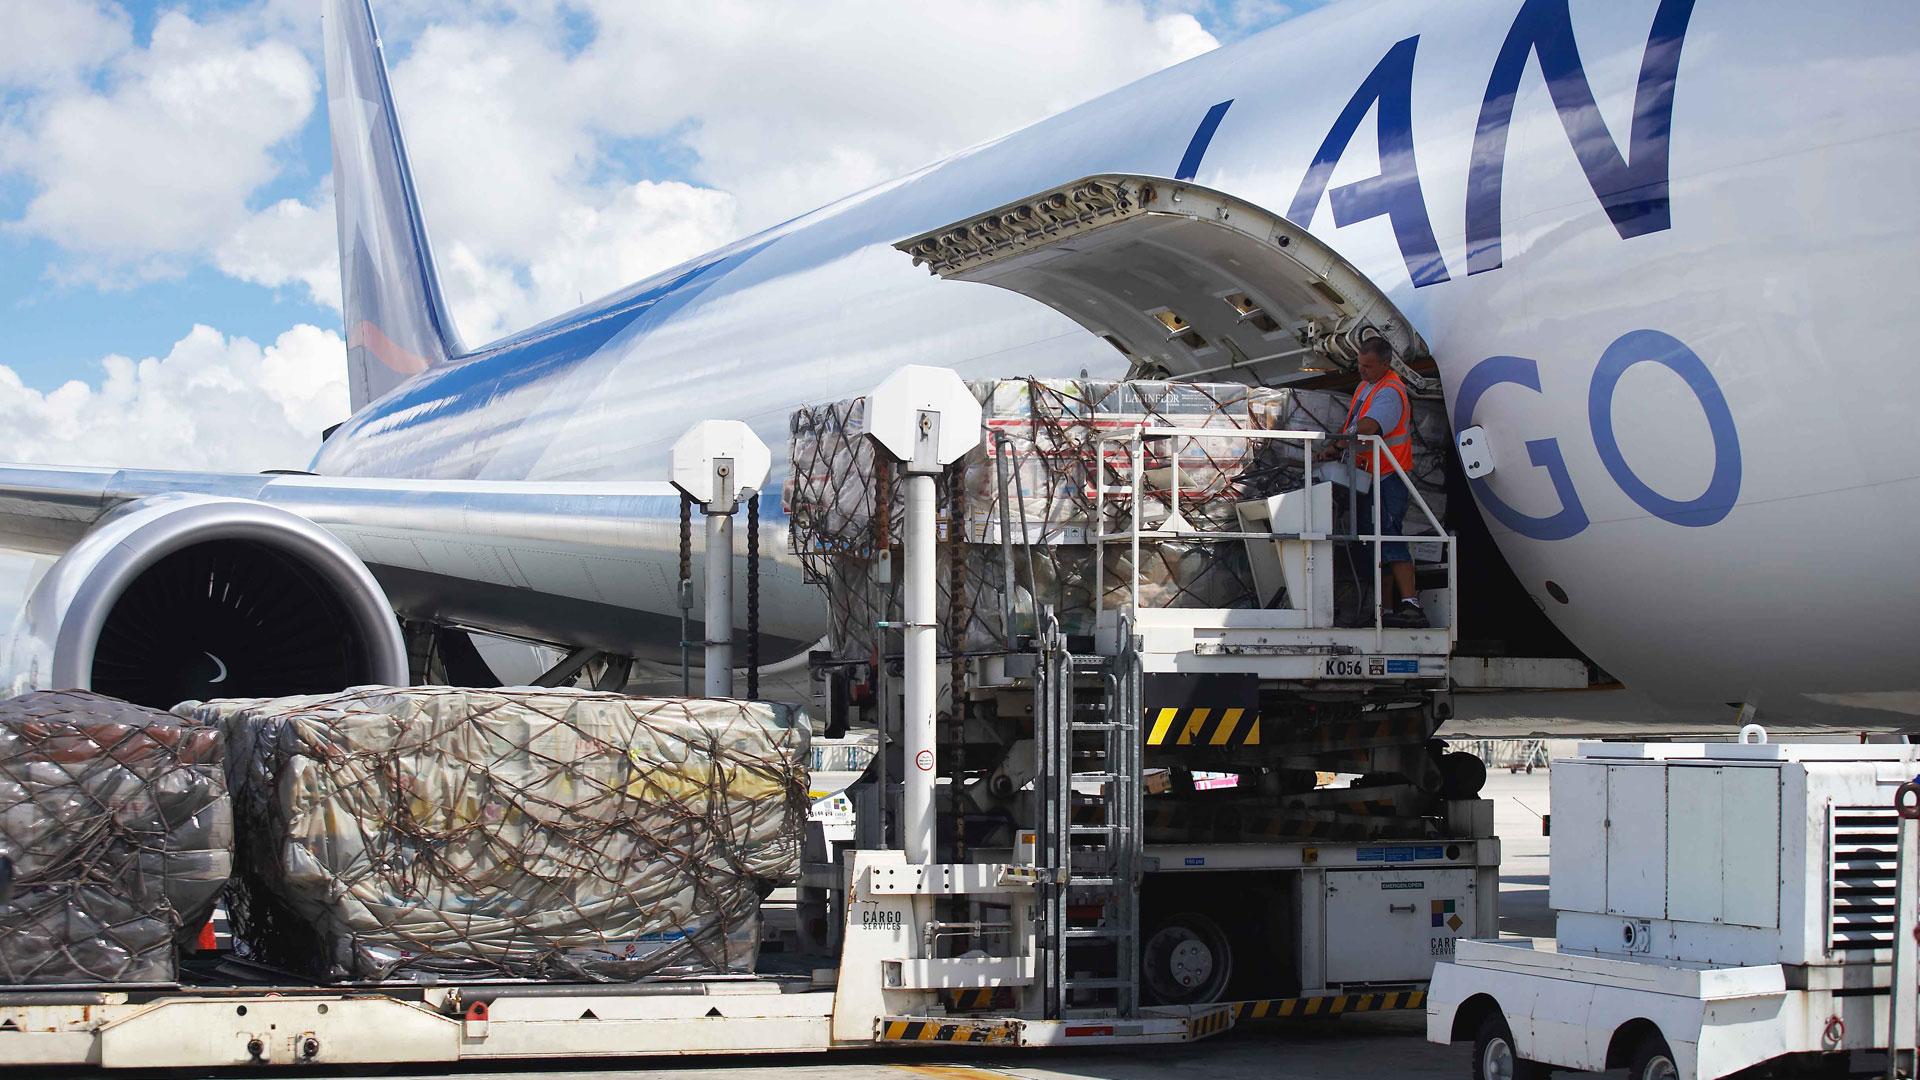 Air Cargo aircraft being loaded with freight